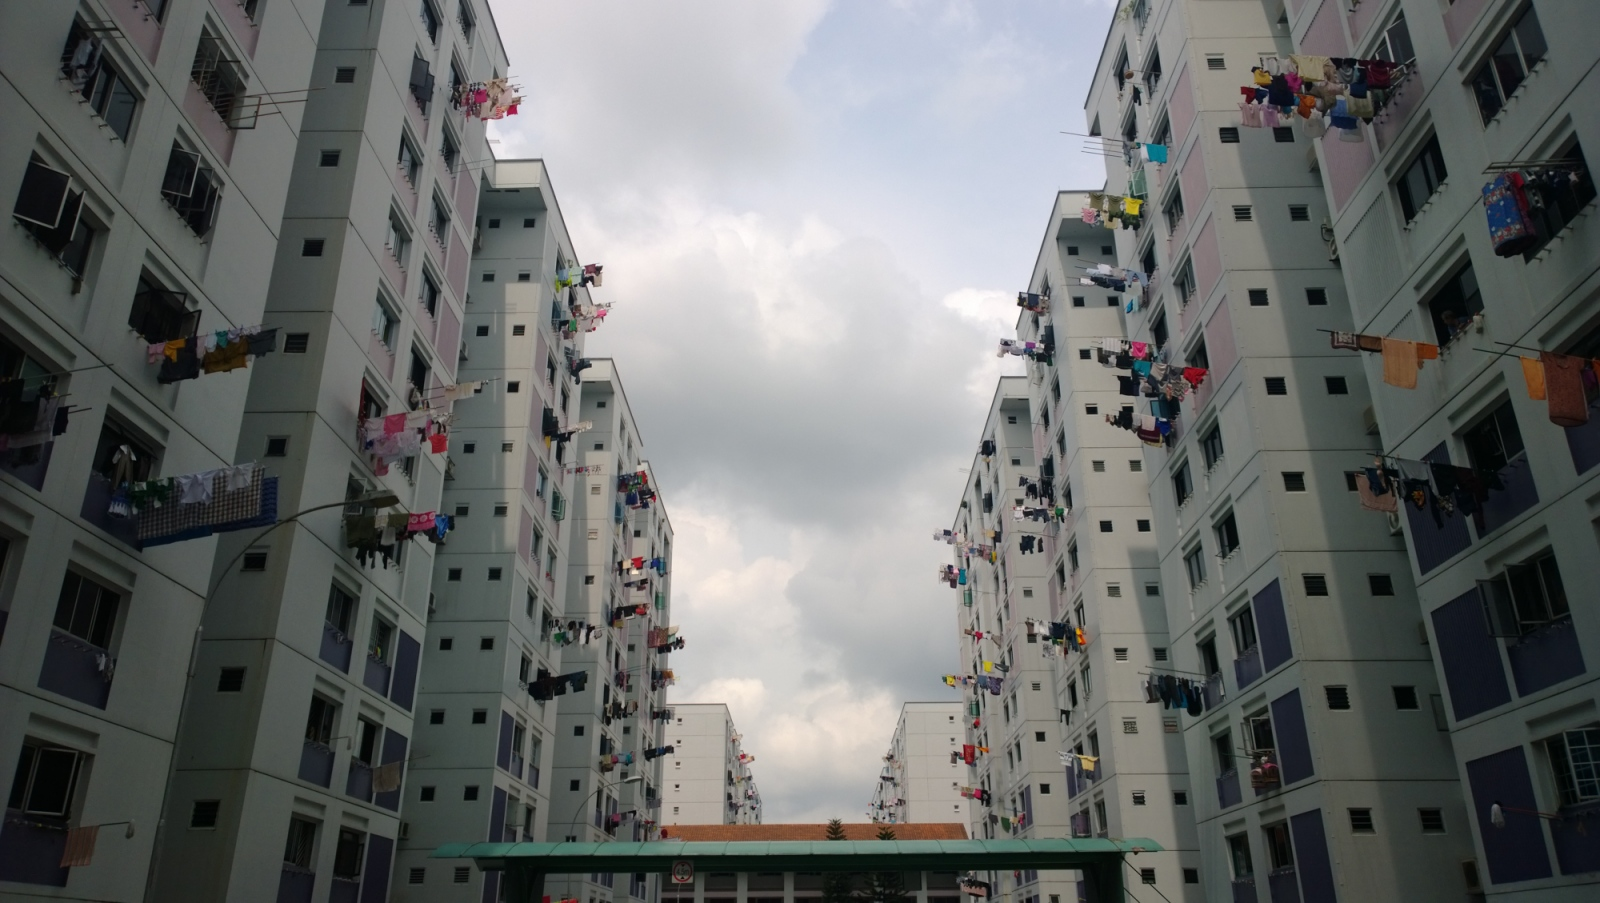 Foreign domestic workers are required by Singapore law to live with their employers. While many employers of Foreign Domestic Workers live in private condominiums and landed houses, many Singaporeans live in Housing Development Board (HDB) Flats. Public Housing in Singapore is one of the country's success stories, and often held up as a shining example of how the city-state has modernised and provided for its citizens in the 50 years since independence. Regularly quoted statistics show that over 80% of Singapore's residents live in HDB (Housing Development Board) Public Housing and 90% of these are home owners.